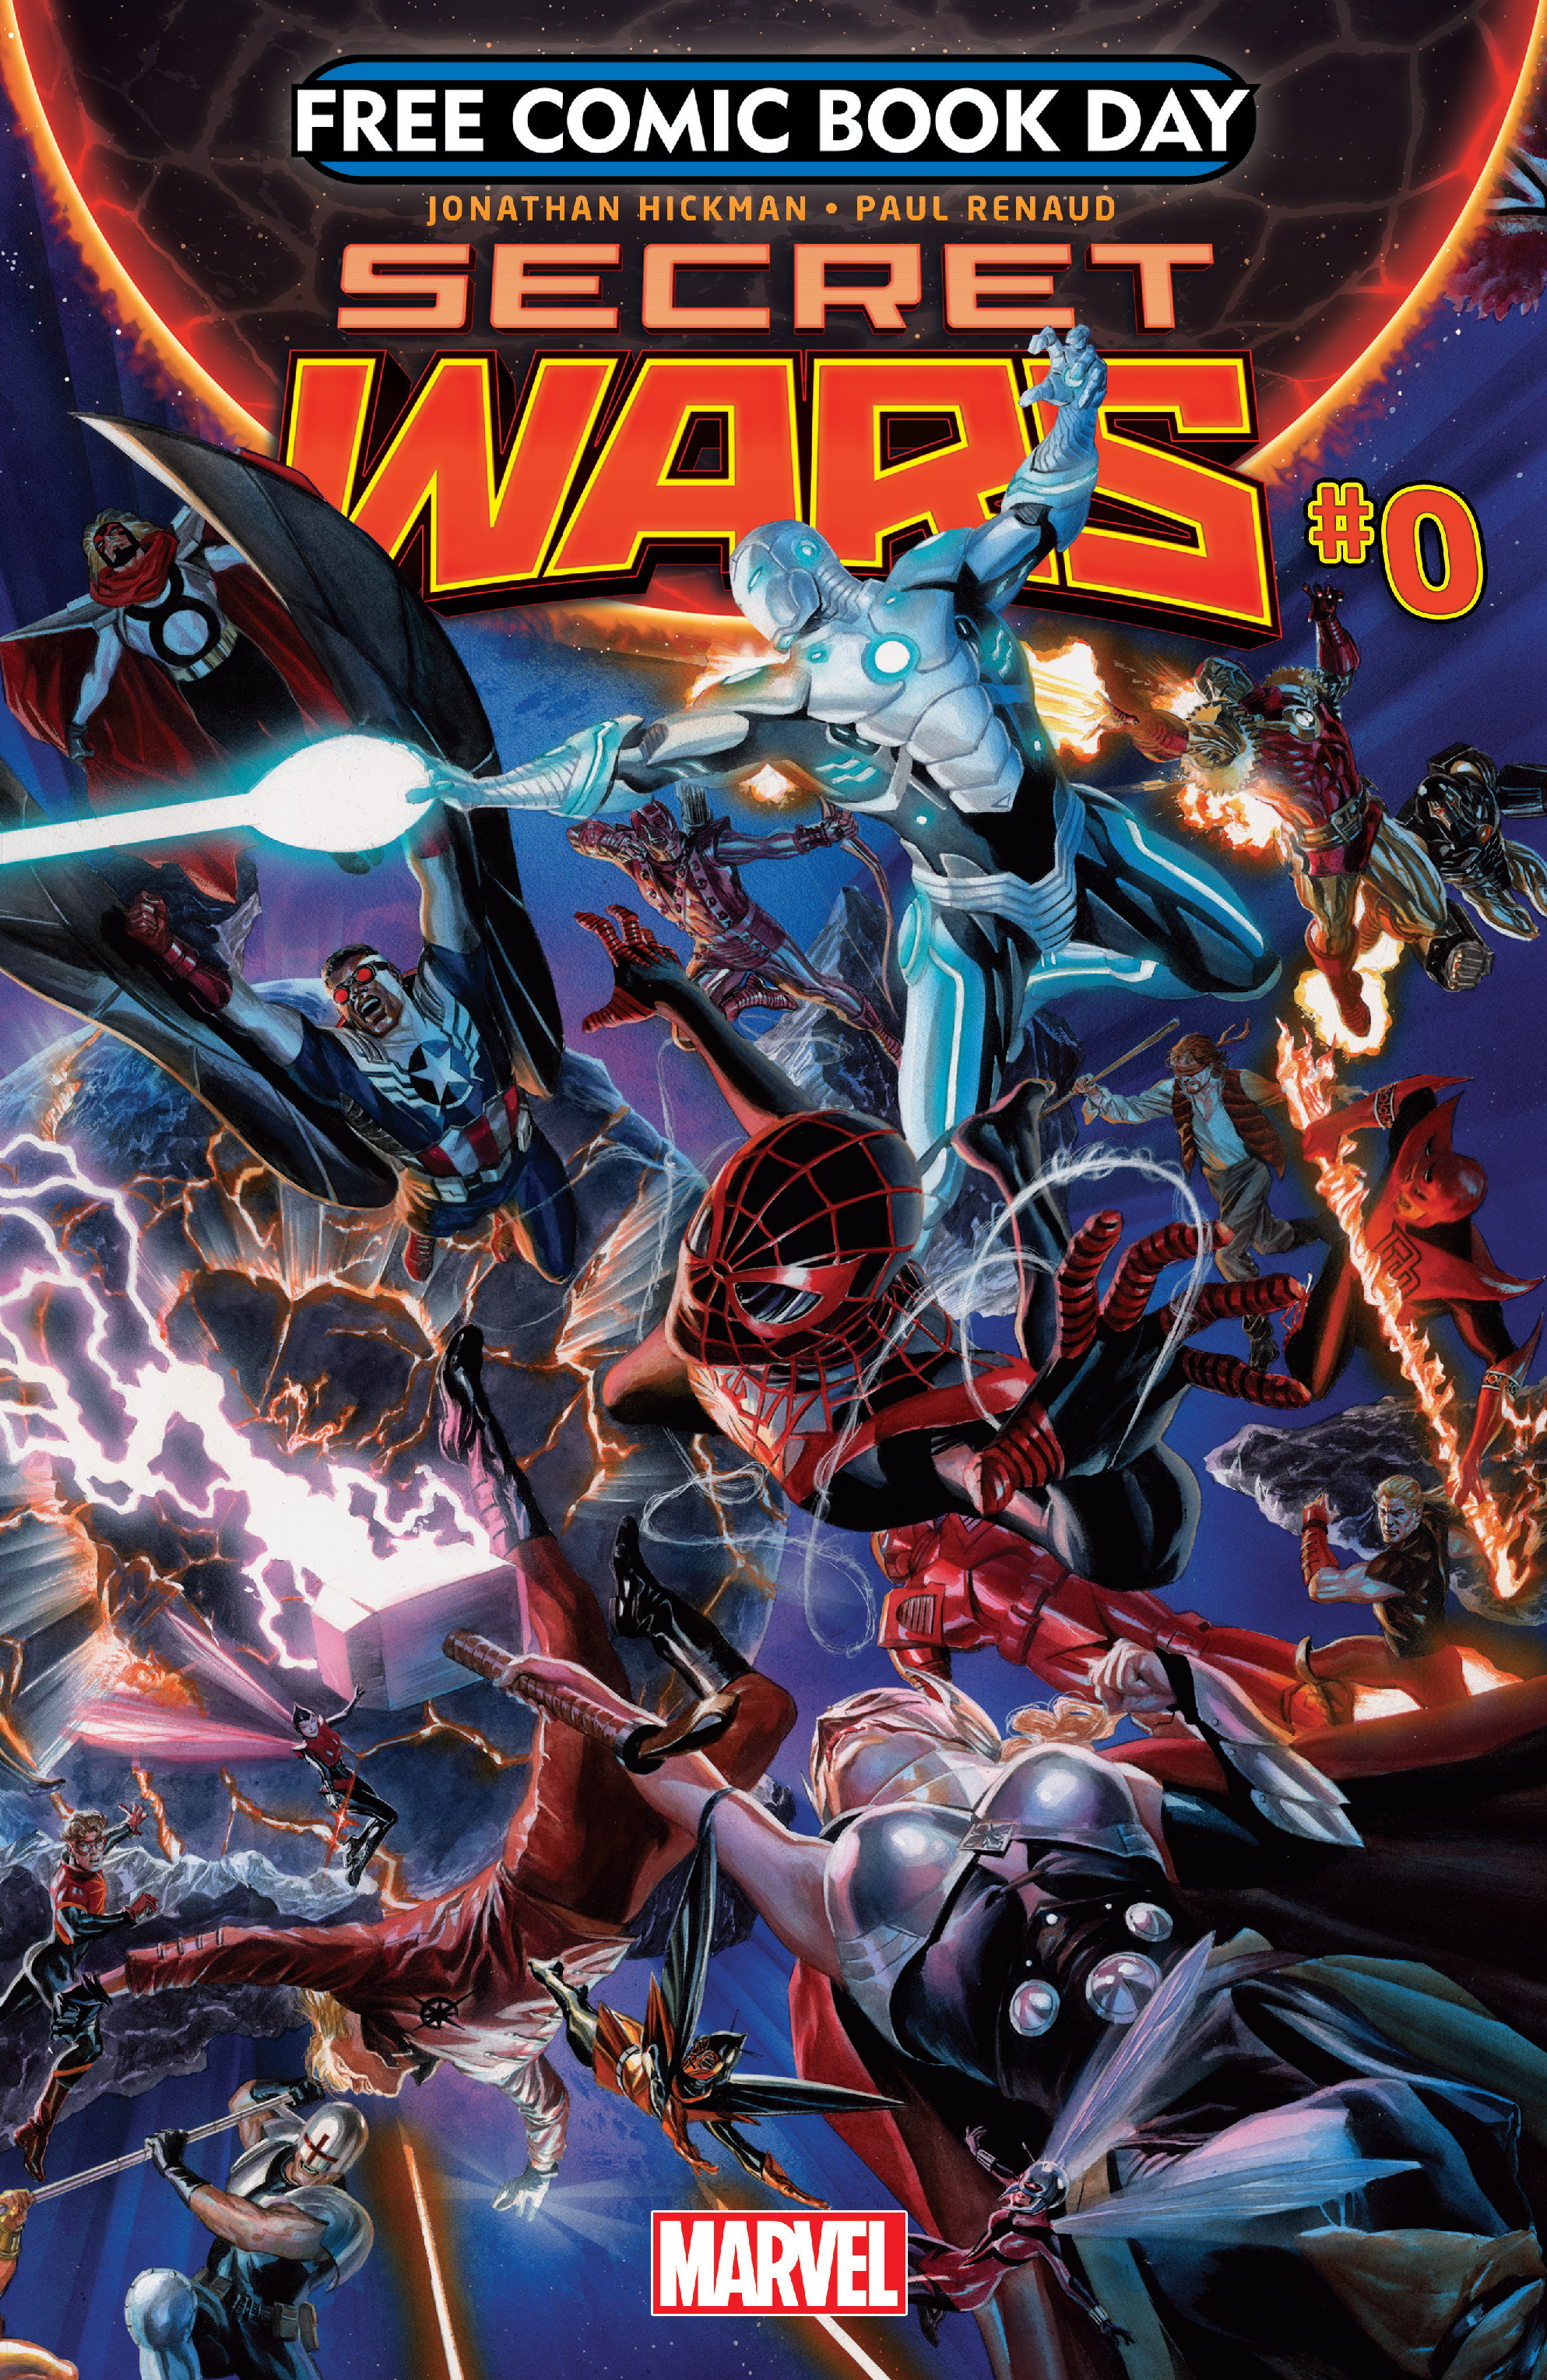 Read online Secret Wars comic -  Issue #0 - 1